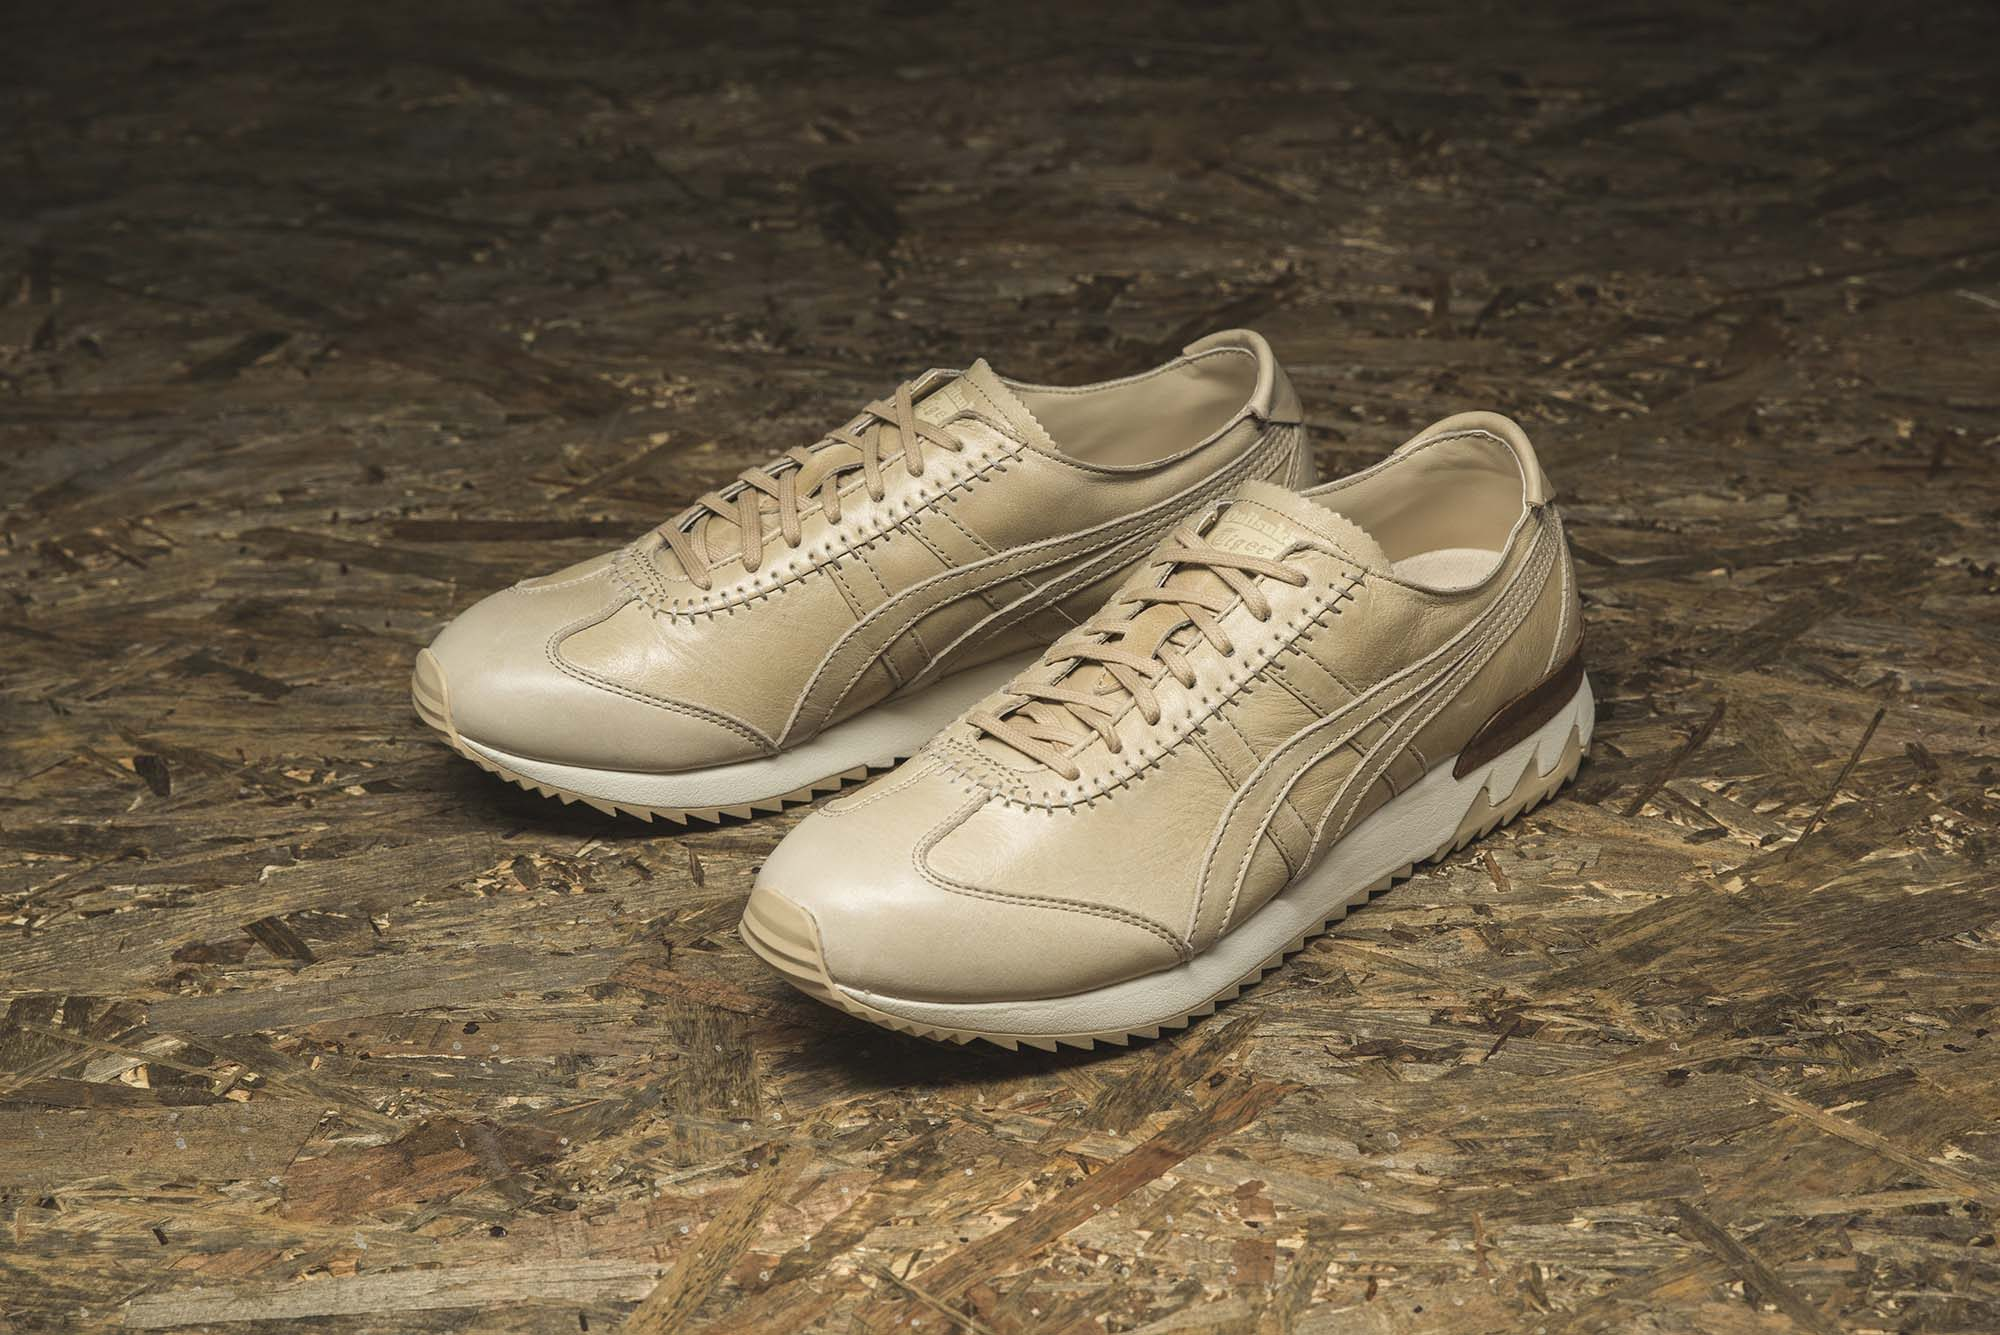 onitsuka-tiger-release-new-tiger-mhs-and-saga-series-23